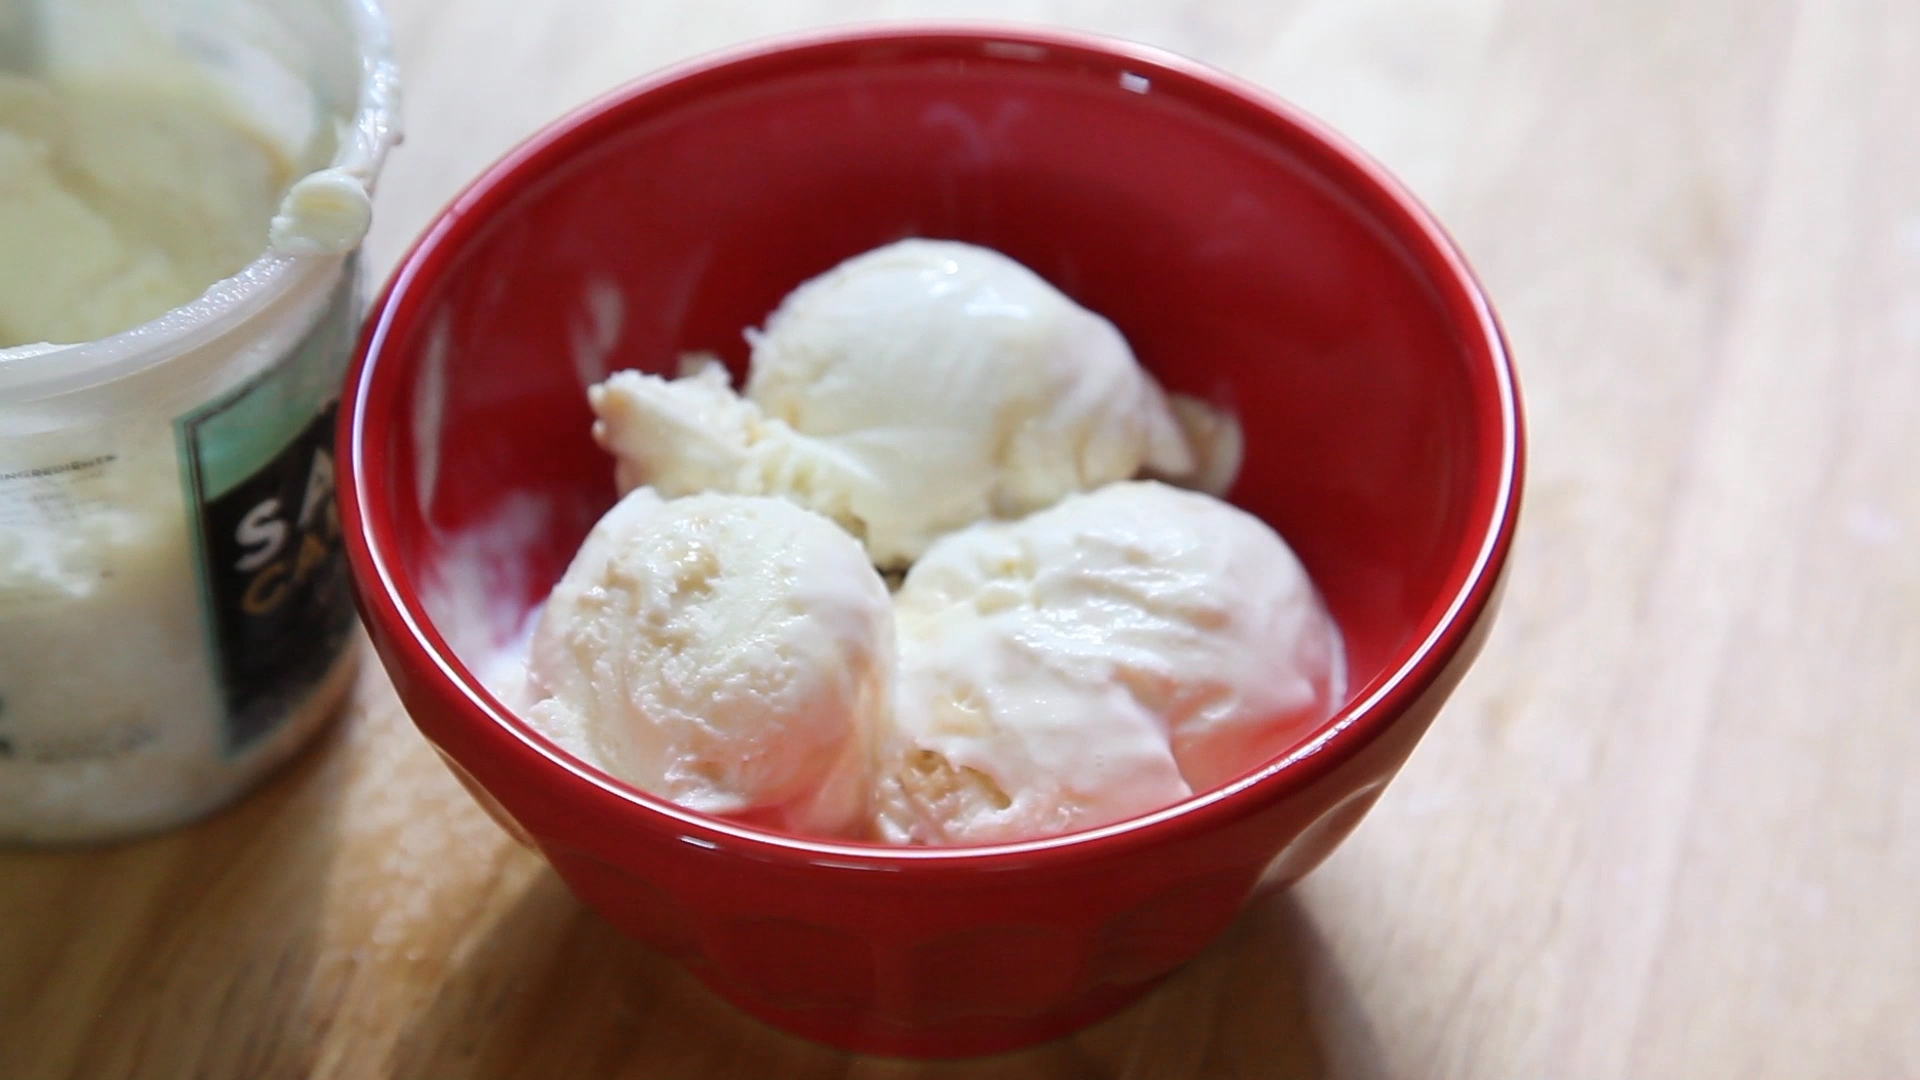 Peel hard-boiled eggs the easy way - TODAY.com